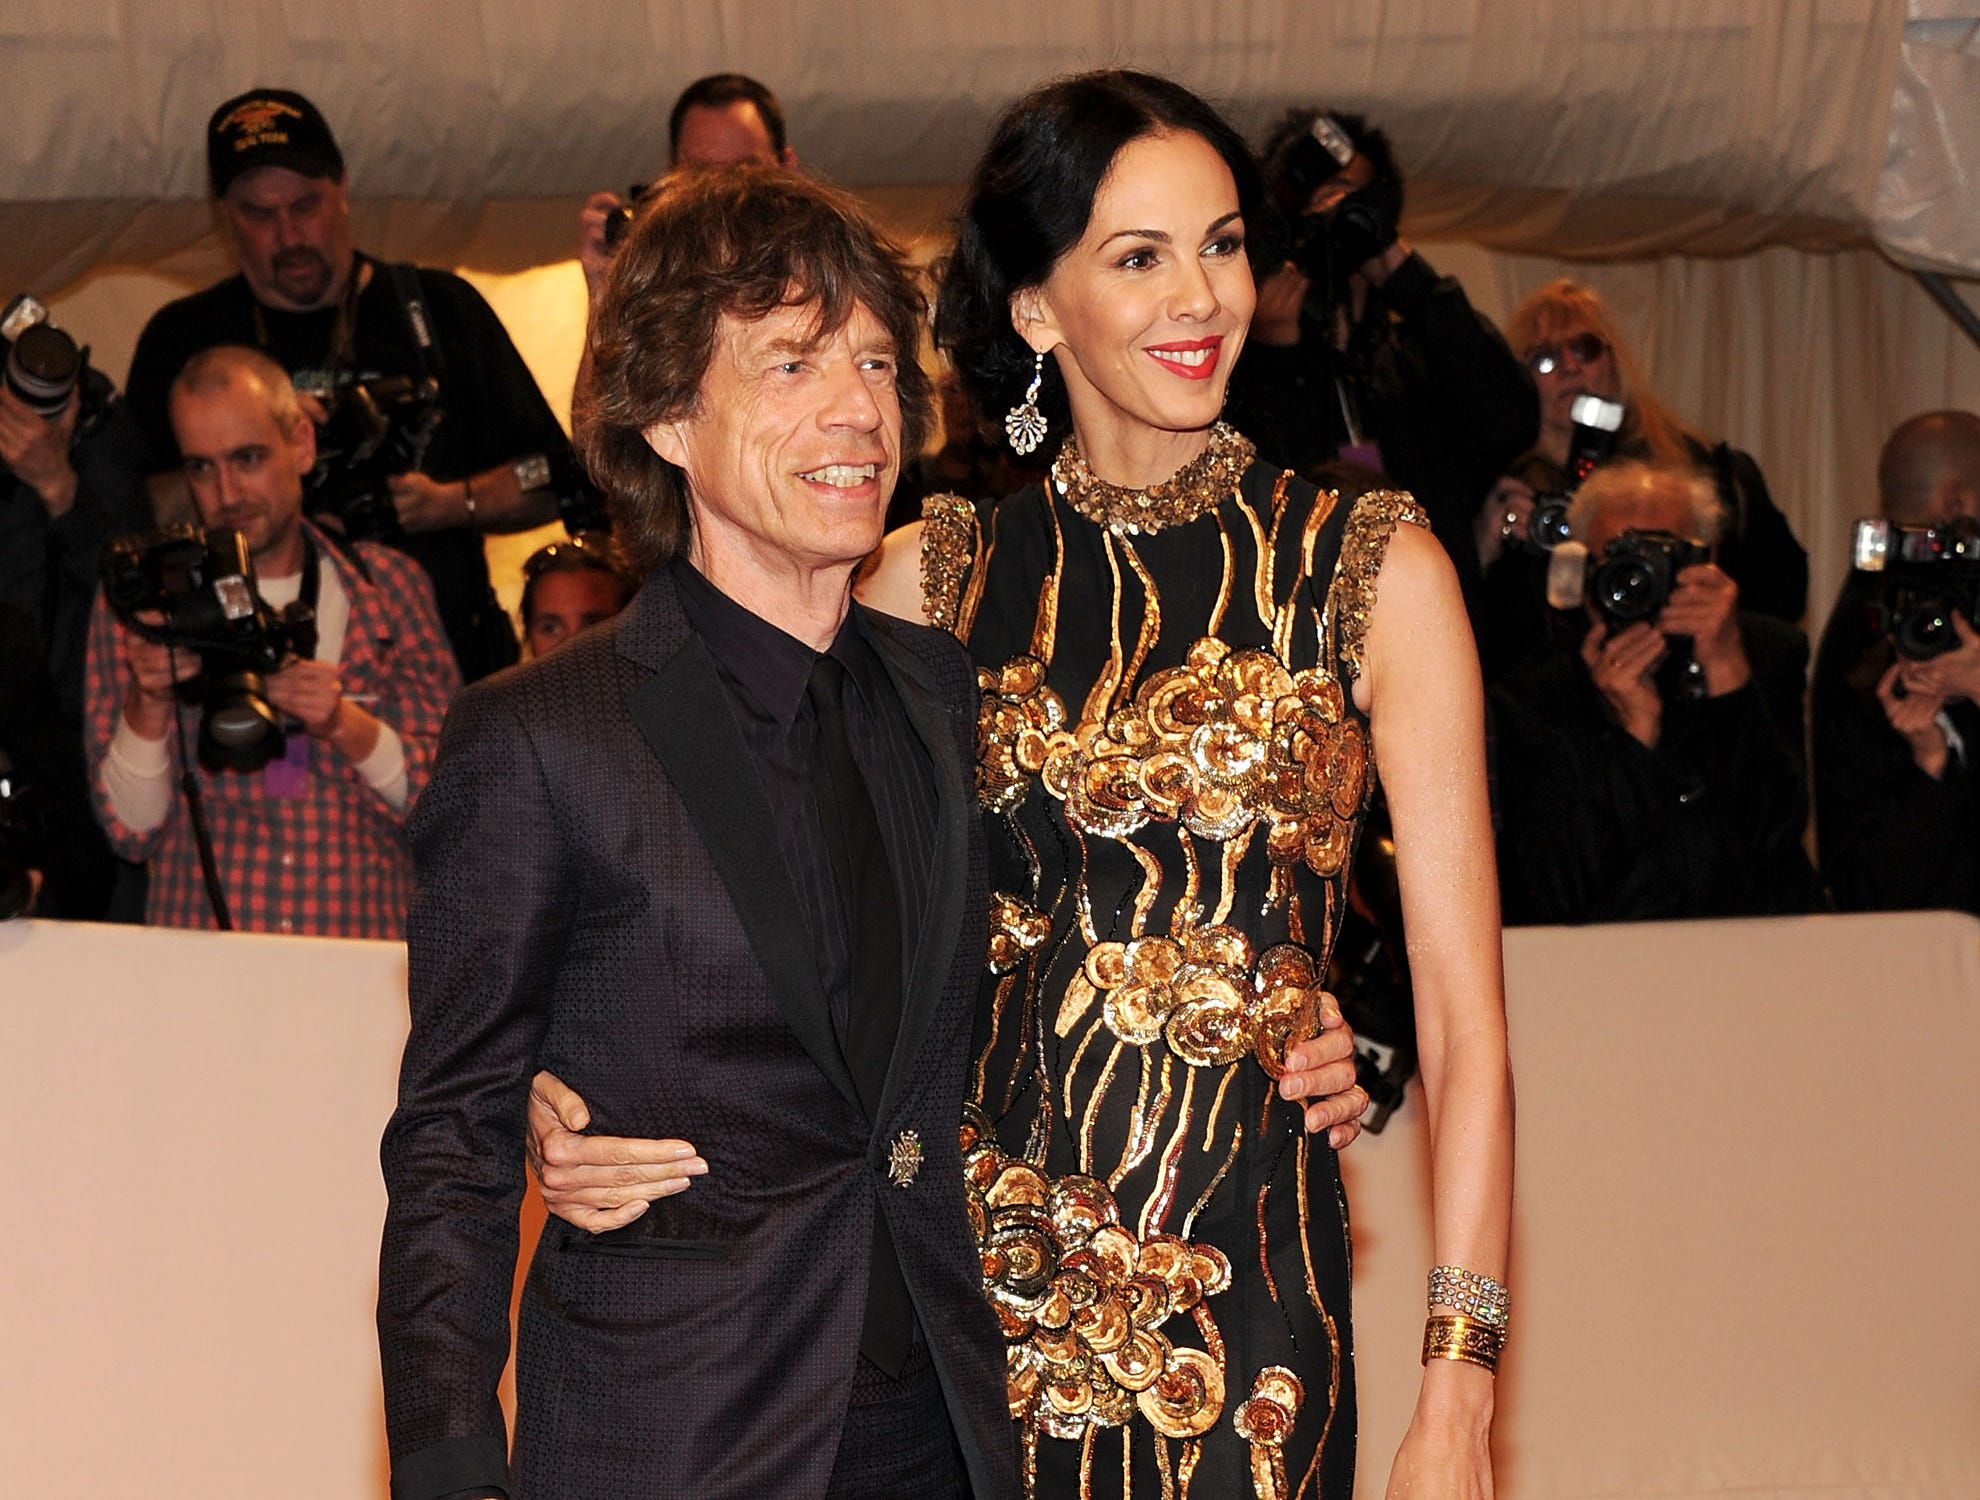 "(FILE PHOTO) NEW YORK, NY - MAY 02:  Musician Mick Jagger and Designer L'Wren Scott attend the ""Alexander McQueen: Savage Beauty"" Costume Institute Gala at The Metropolitan Museum of Art on May 2, 2011 in New York City.  (Photo by Larry Busacca/Getty Images) ORG XMIT: 479617943 ORIG FILE ID: 113517434"